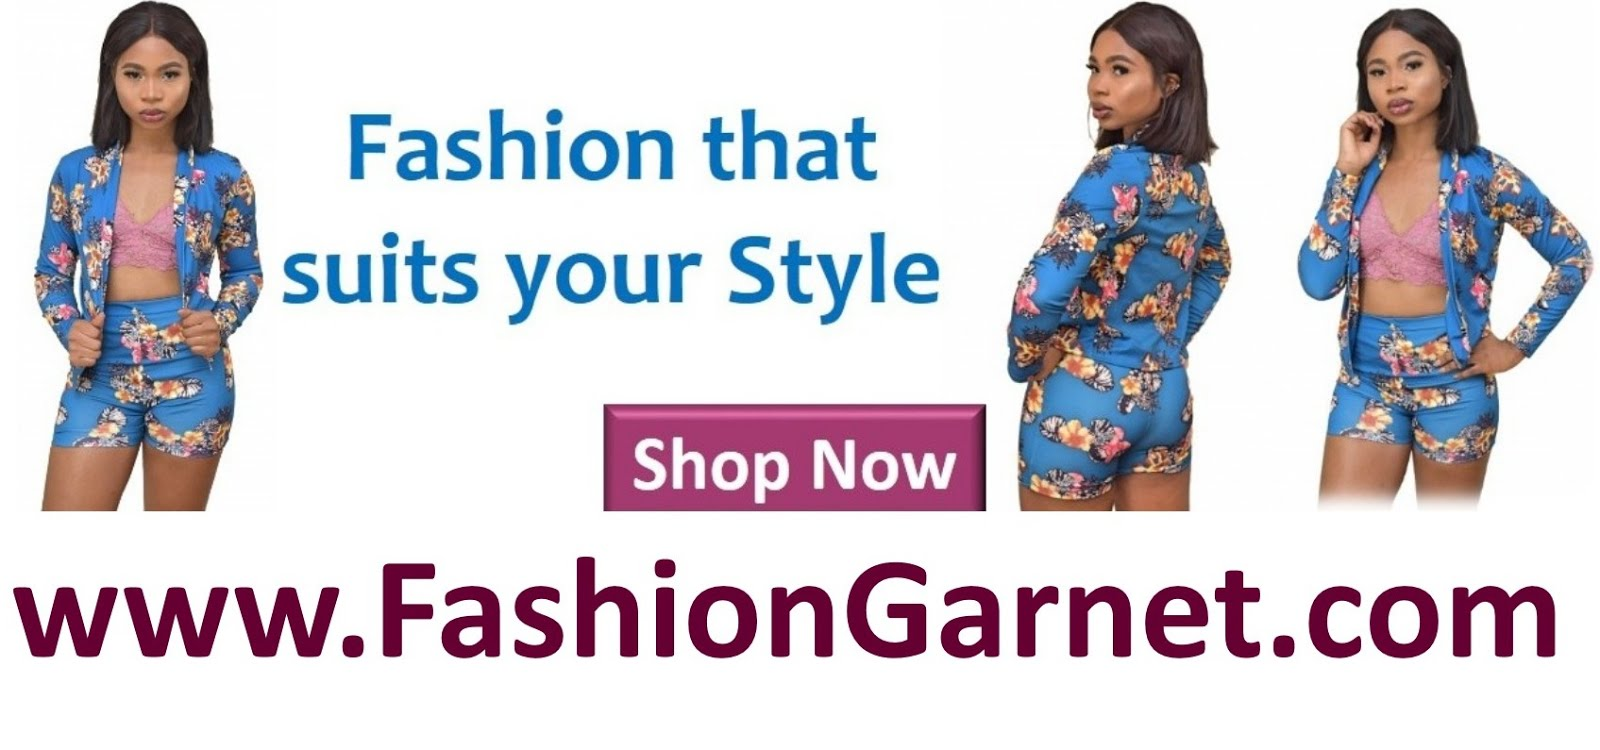 Shop Now At Fashion Garnet